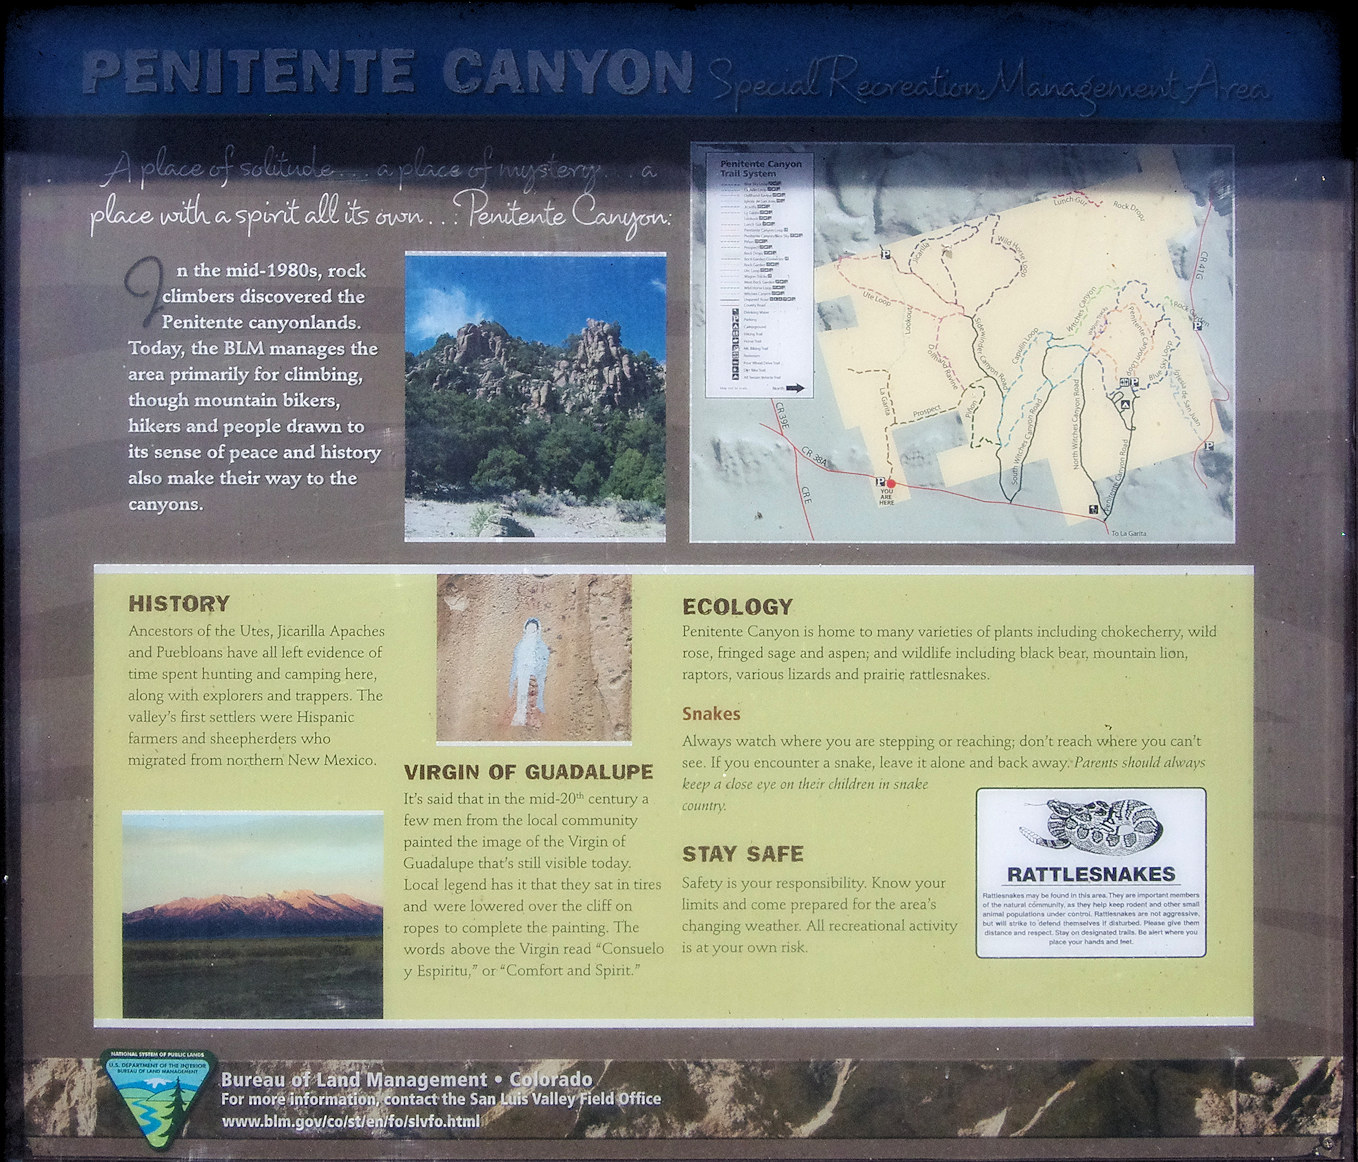 Colorado, Saguache Canyon, Penitente Canyon